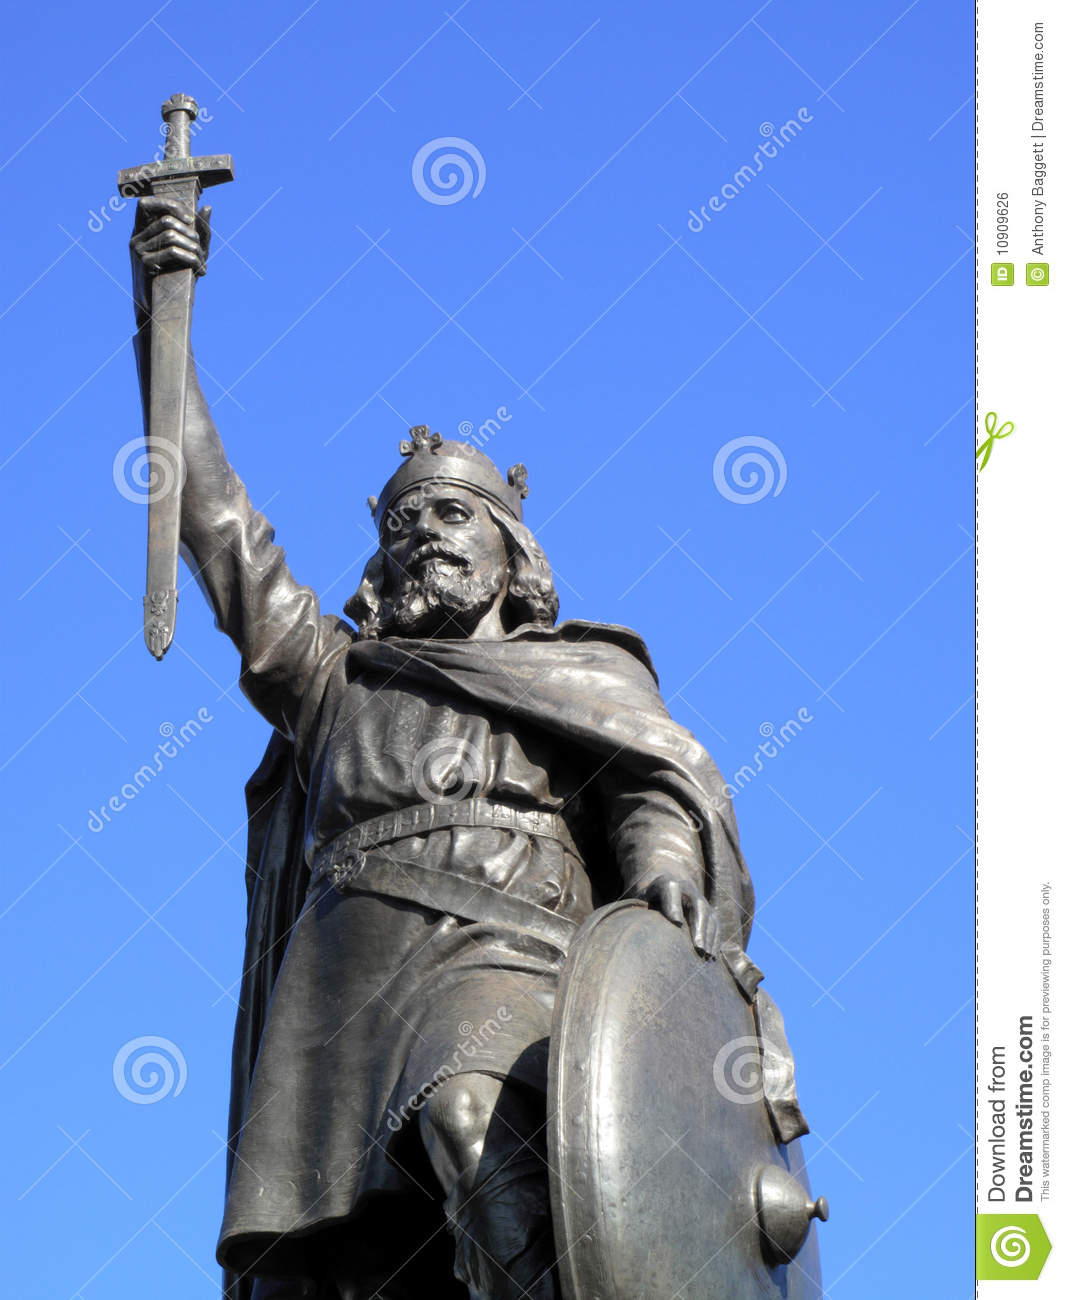 King Alfred The Great Statue Stock Photo